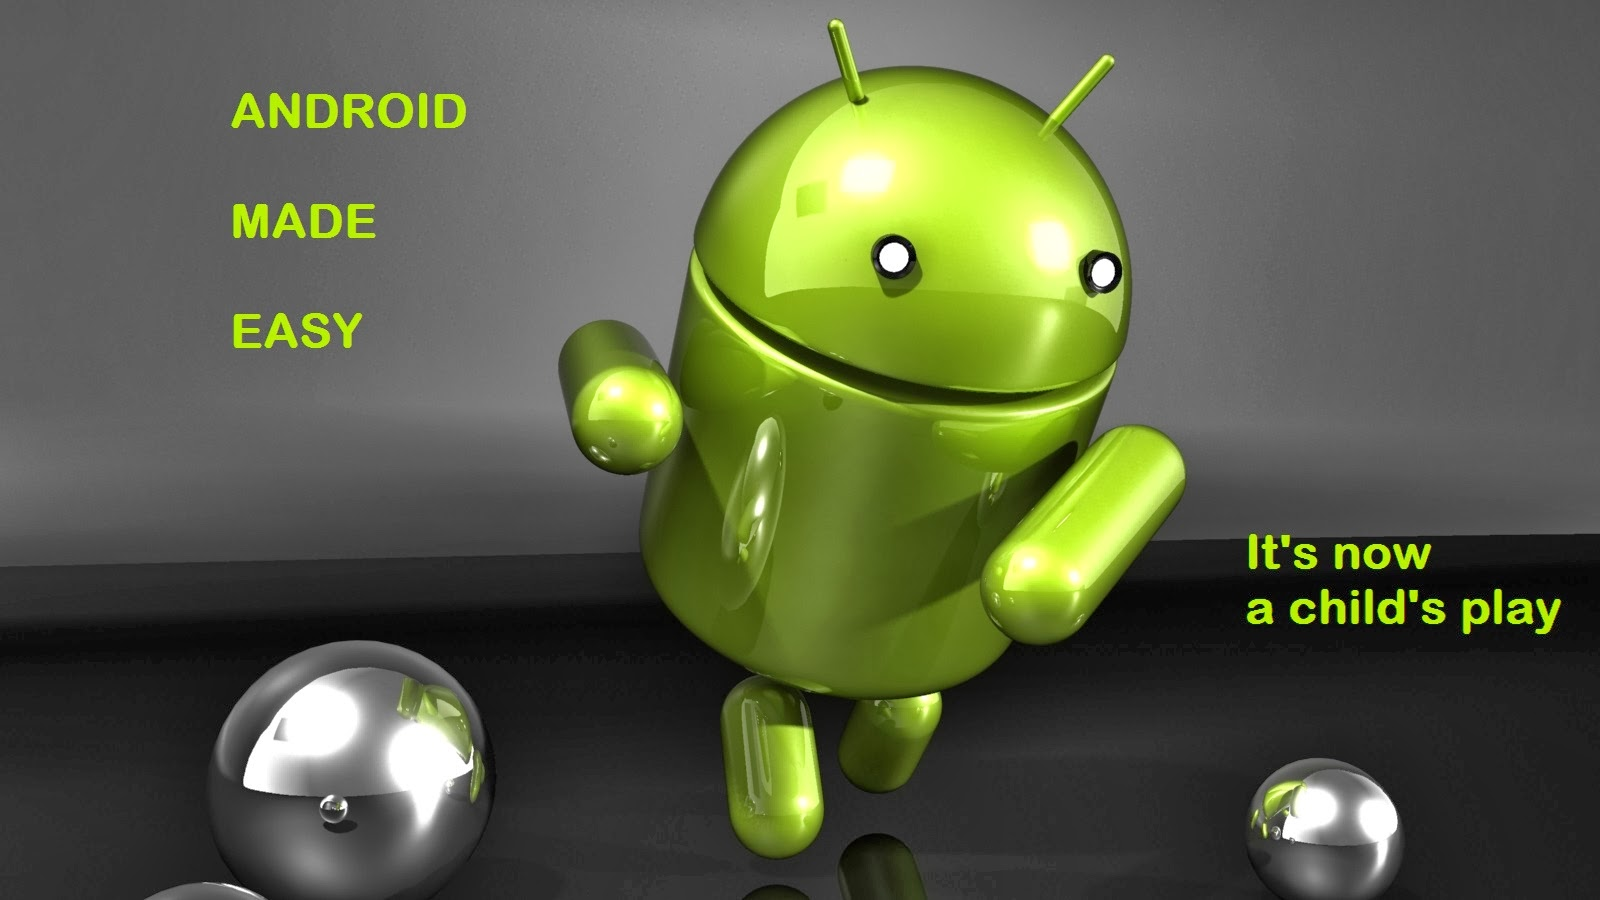 Learning Android Easy